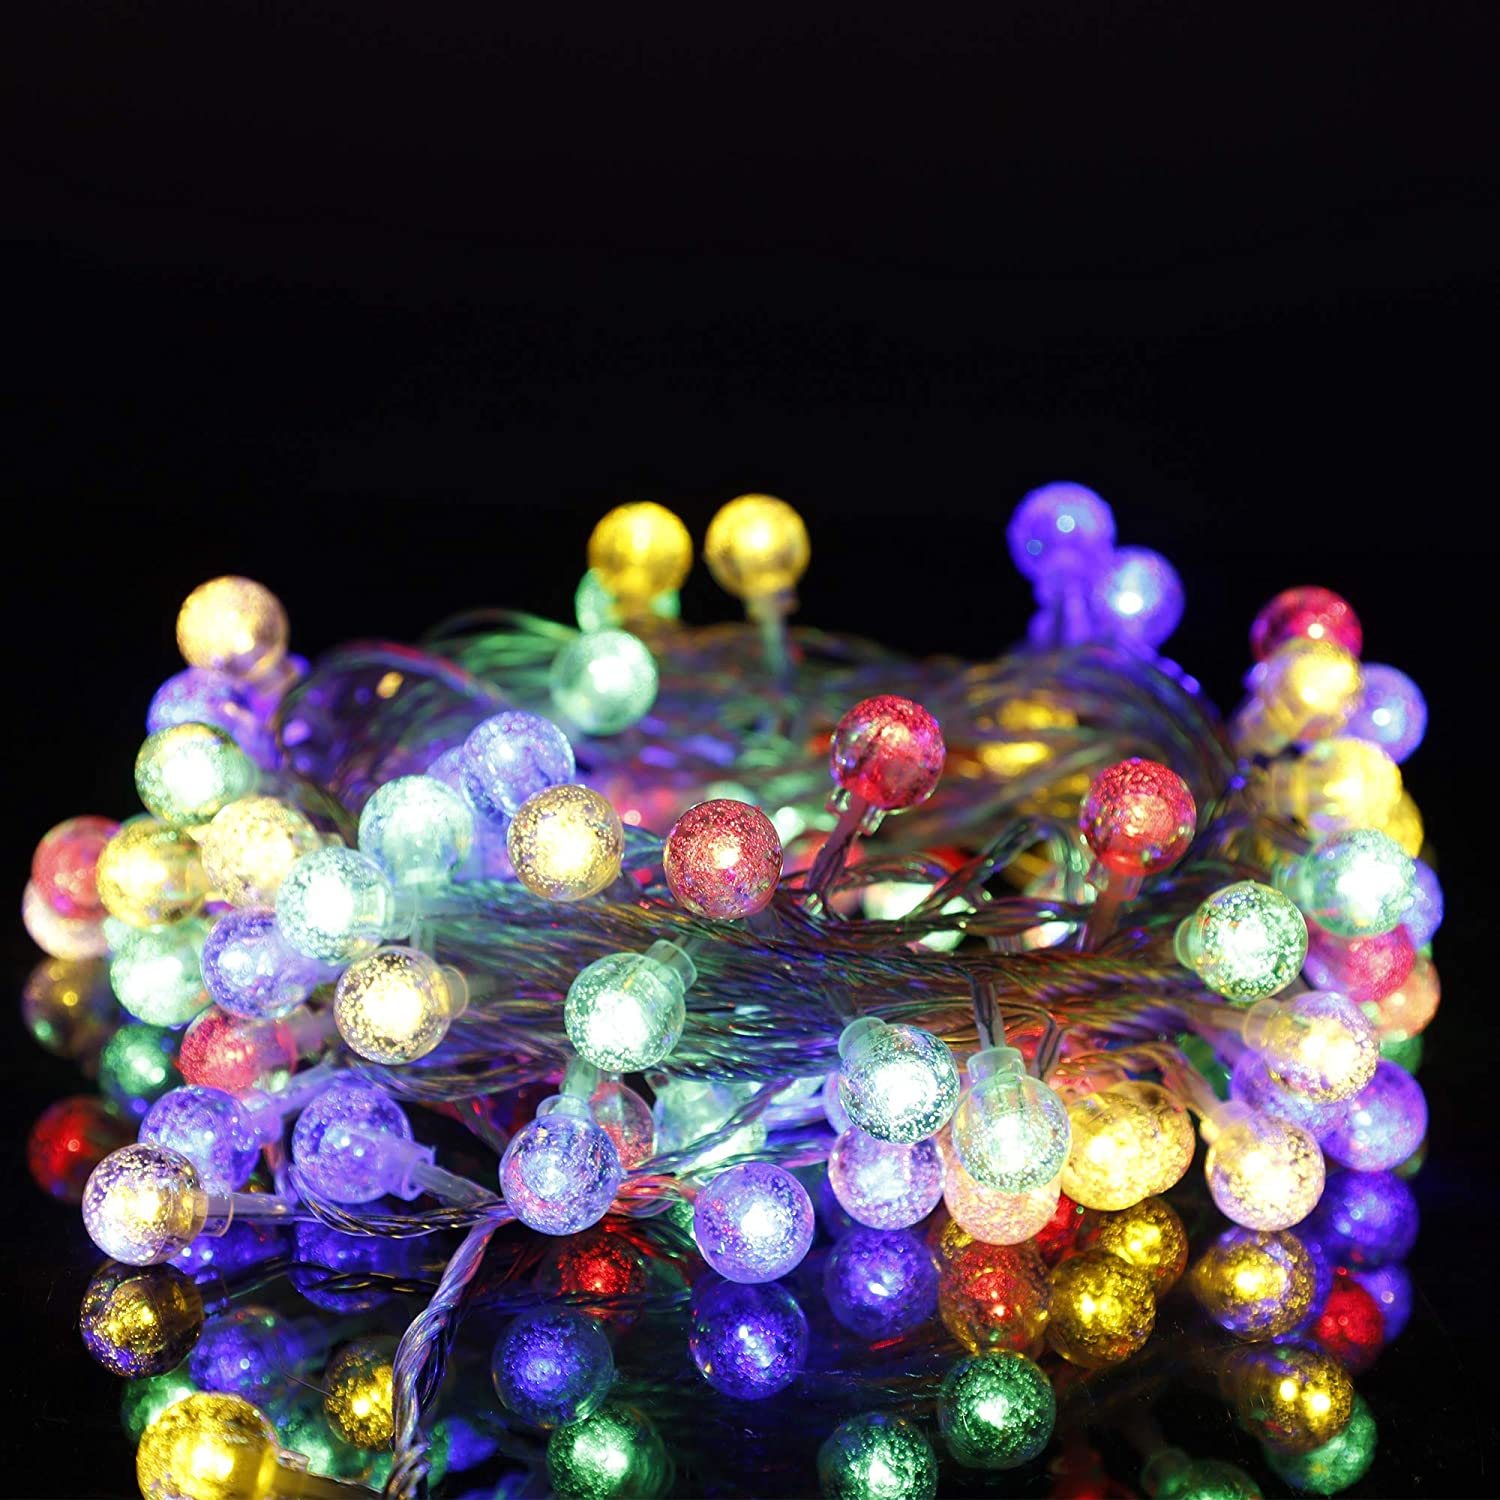 kemooie Globe Fairy Lights, 33Ft 100 Led Connectable Plug in String Lights, 8 Twinkle Modes Waterproof Indoor Outdoor Decorative Lights for Bedroom Patio Garden Christmas Party Wedding ( Multicolor )